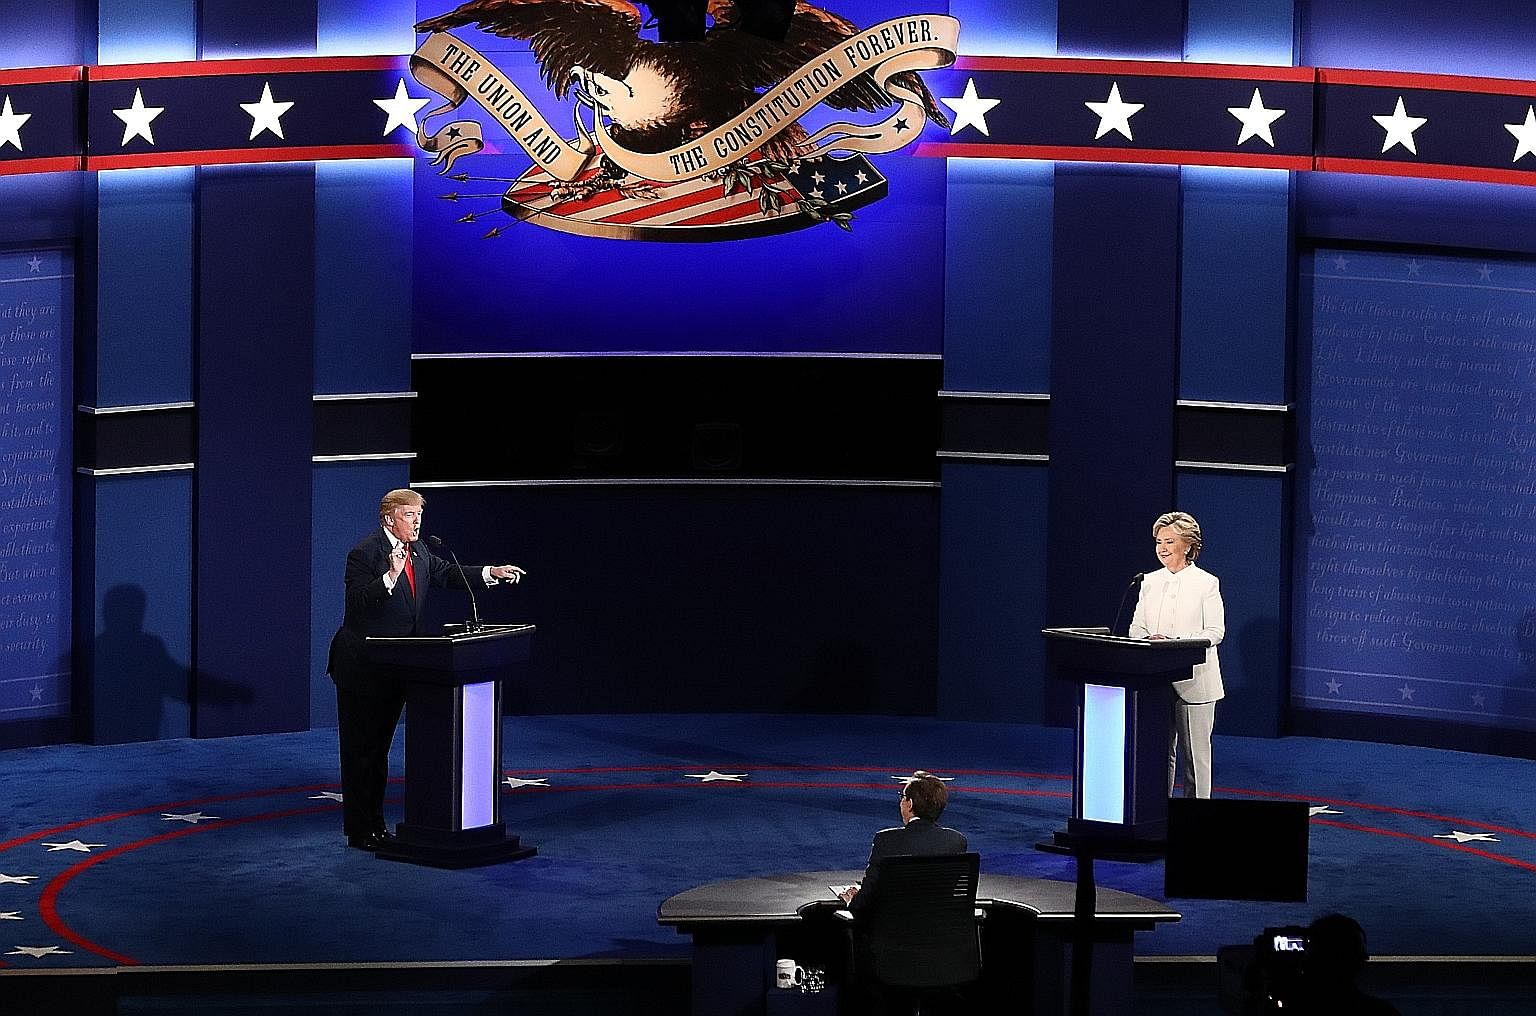 Mr Trump and Mrs Clinton at the third presidential debate in Las Vegas last week. The binary character of US politics is an anachronism in a world where nearly all democracies are now multi-party systems, says an academic.